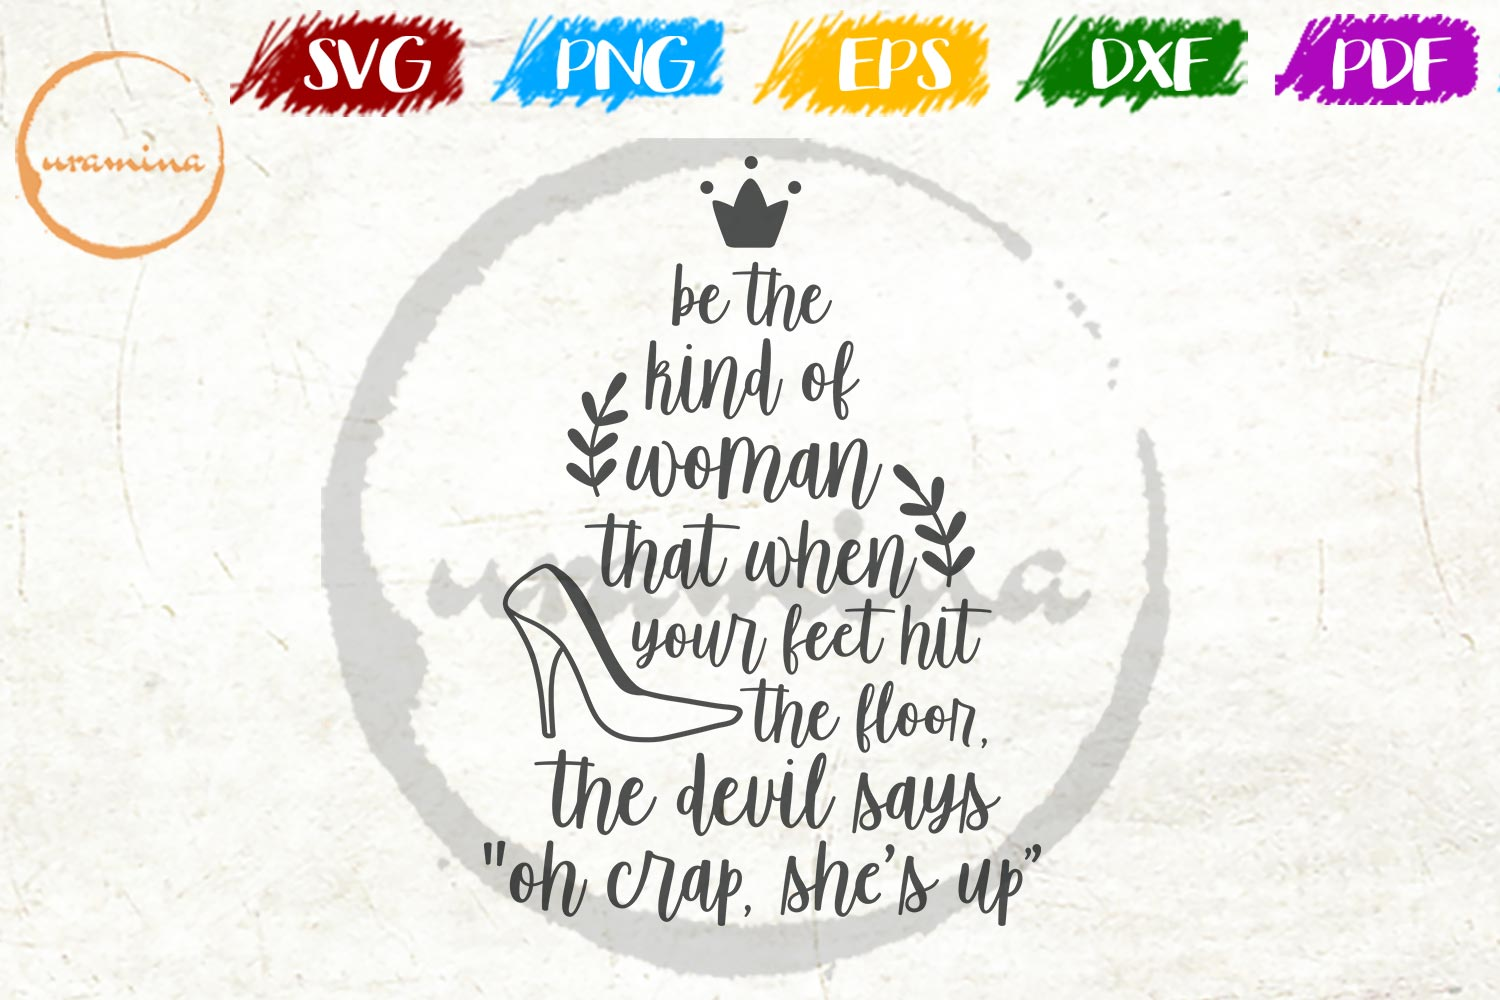 Download Free Be The Kind Of Woman That When Your Feet Graphic By Uramina for Cricut Explore, Silhouette and other cutting machines.